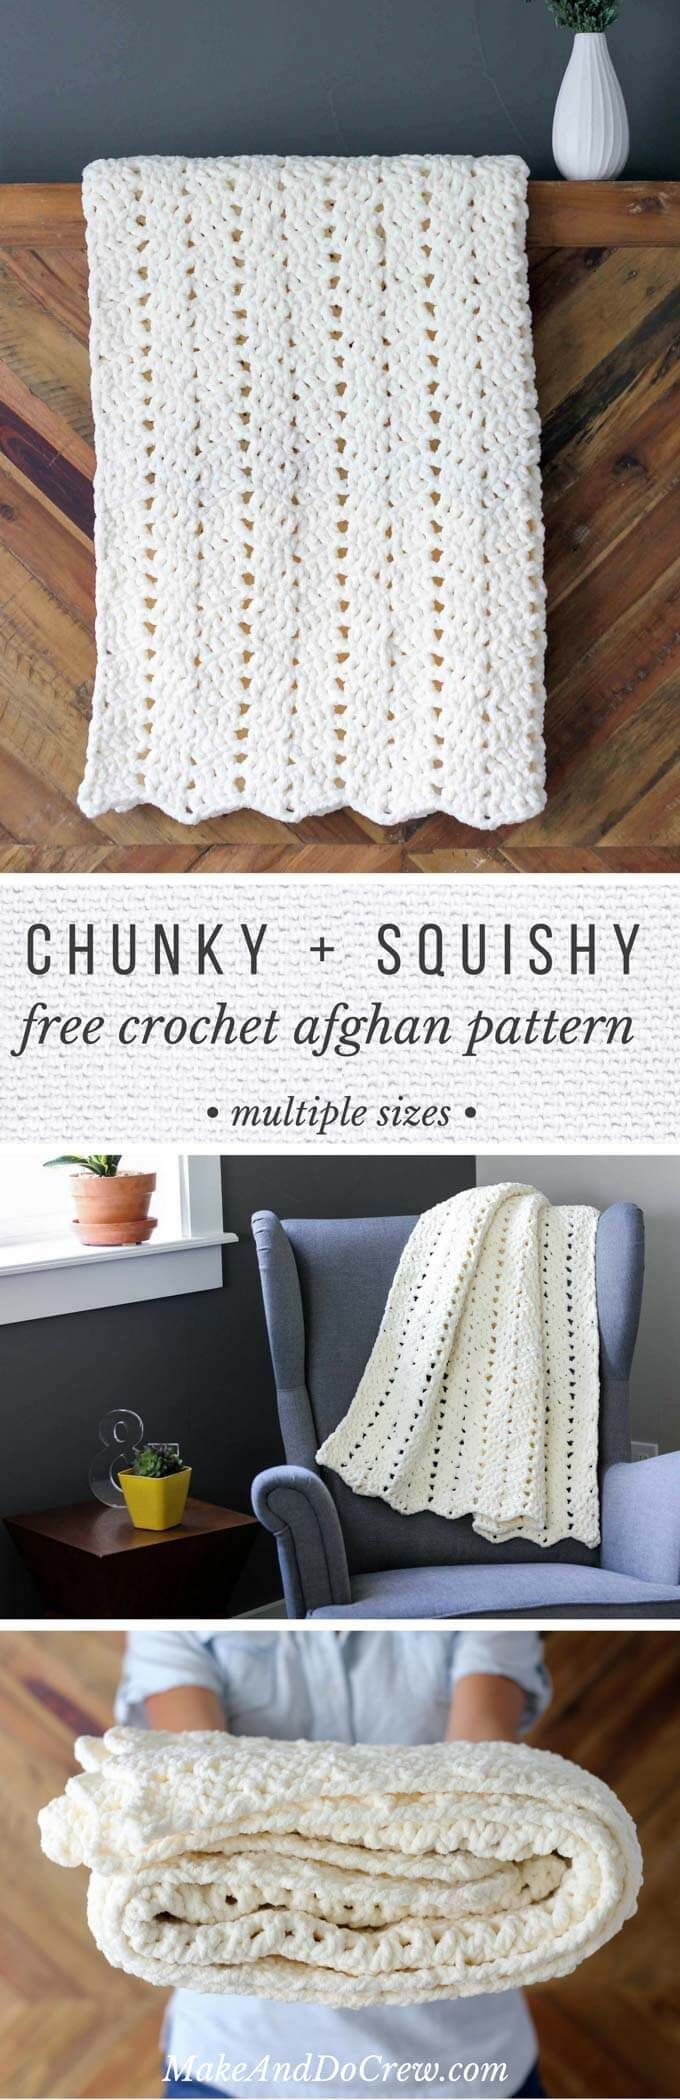 This free chunky crochet blanket pattern makes a perfect timeless baby gift, but once you feel how soft it is, there's no way you won't want to make one for yourself too! The pattern explains how to make larger sizes and it works up super quickly in bulky Bernat Blanket Yarn. Great pattern for beginners--looks fancy, but isn't hard to figure out! #CrochetAfghan